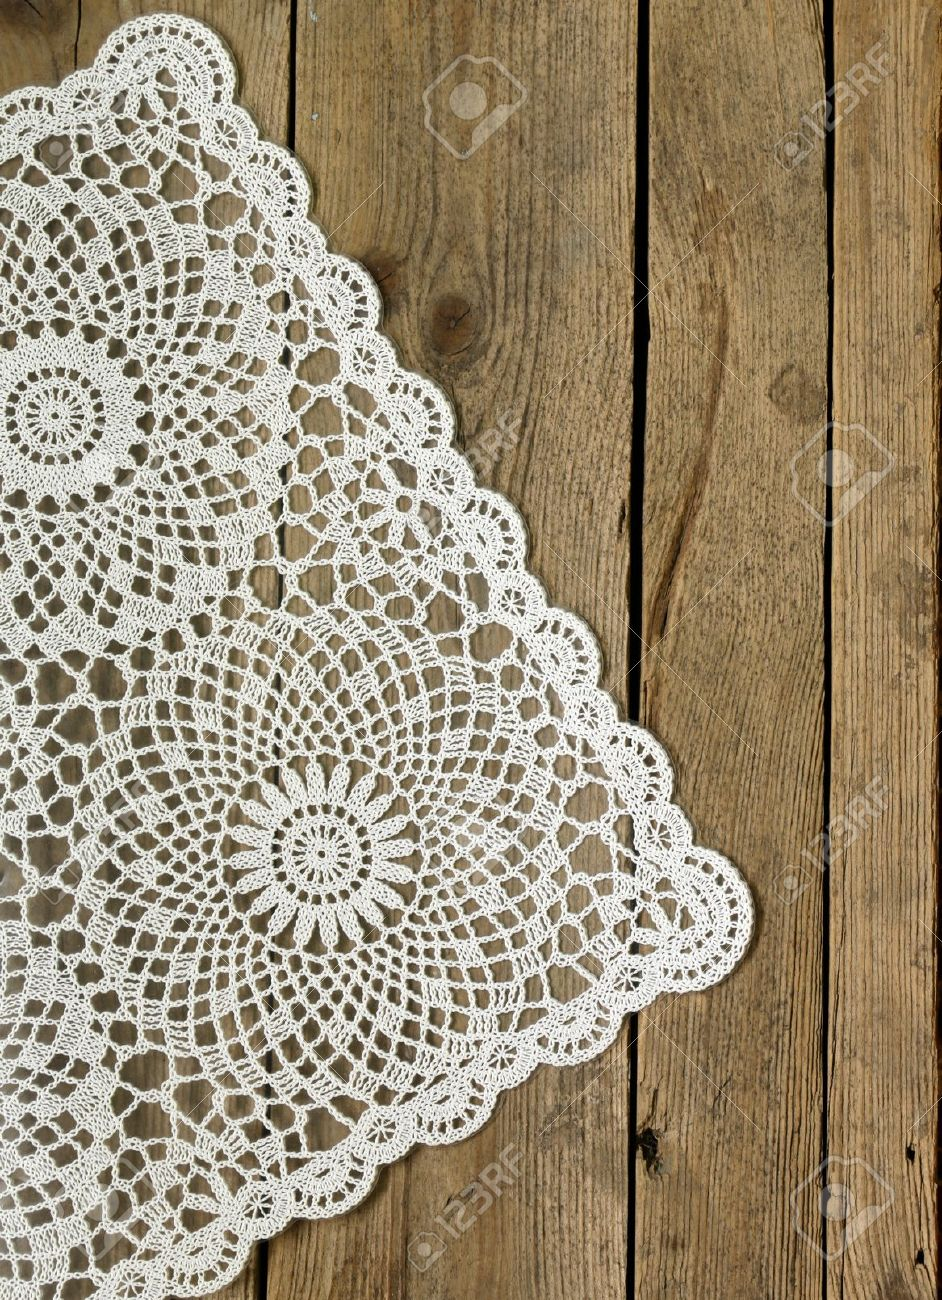 Cream Lace Tablecloths | 60 Inch Round Lace Tablecloth | Lace Tablecloths